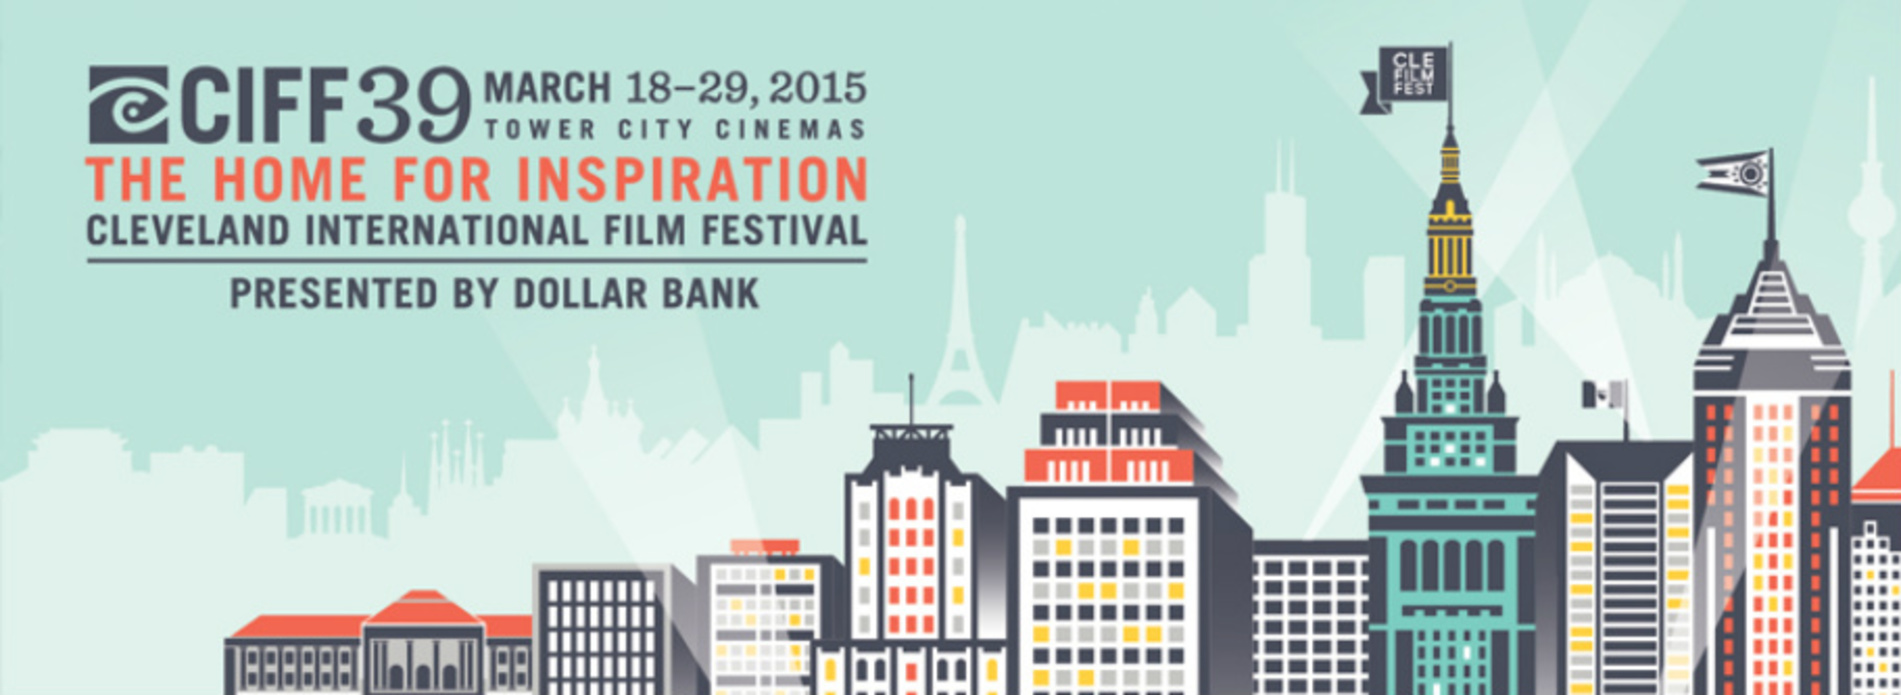 The 2015 FilmForums Series in partnership with the Cleveland International Film Festival, Part 1